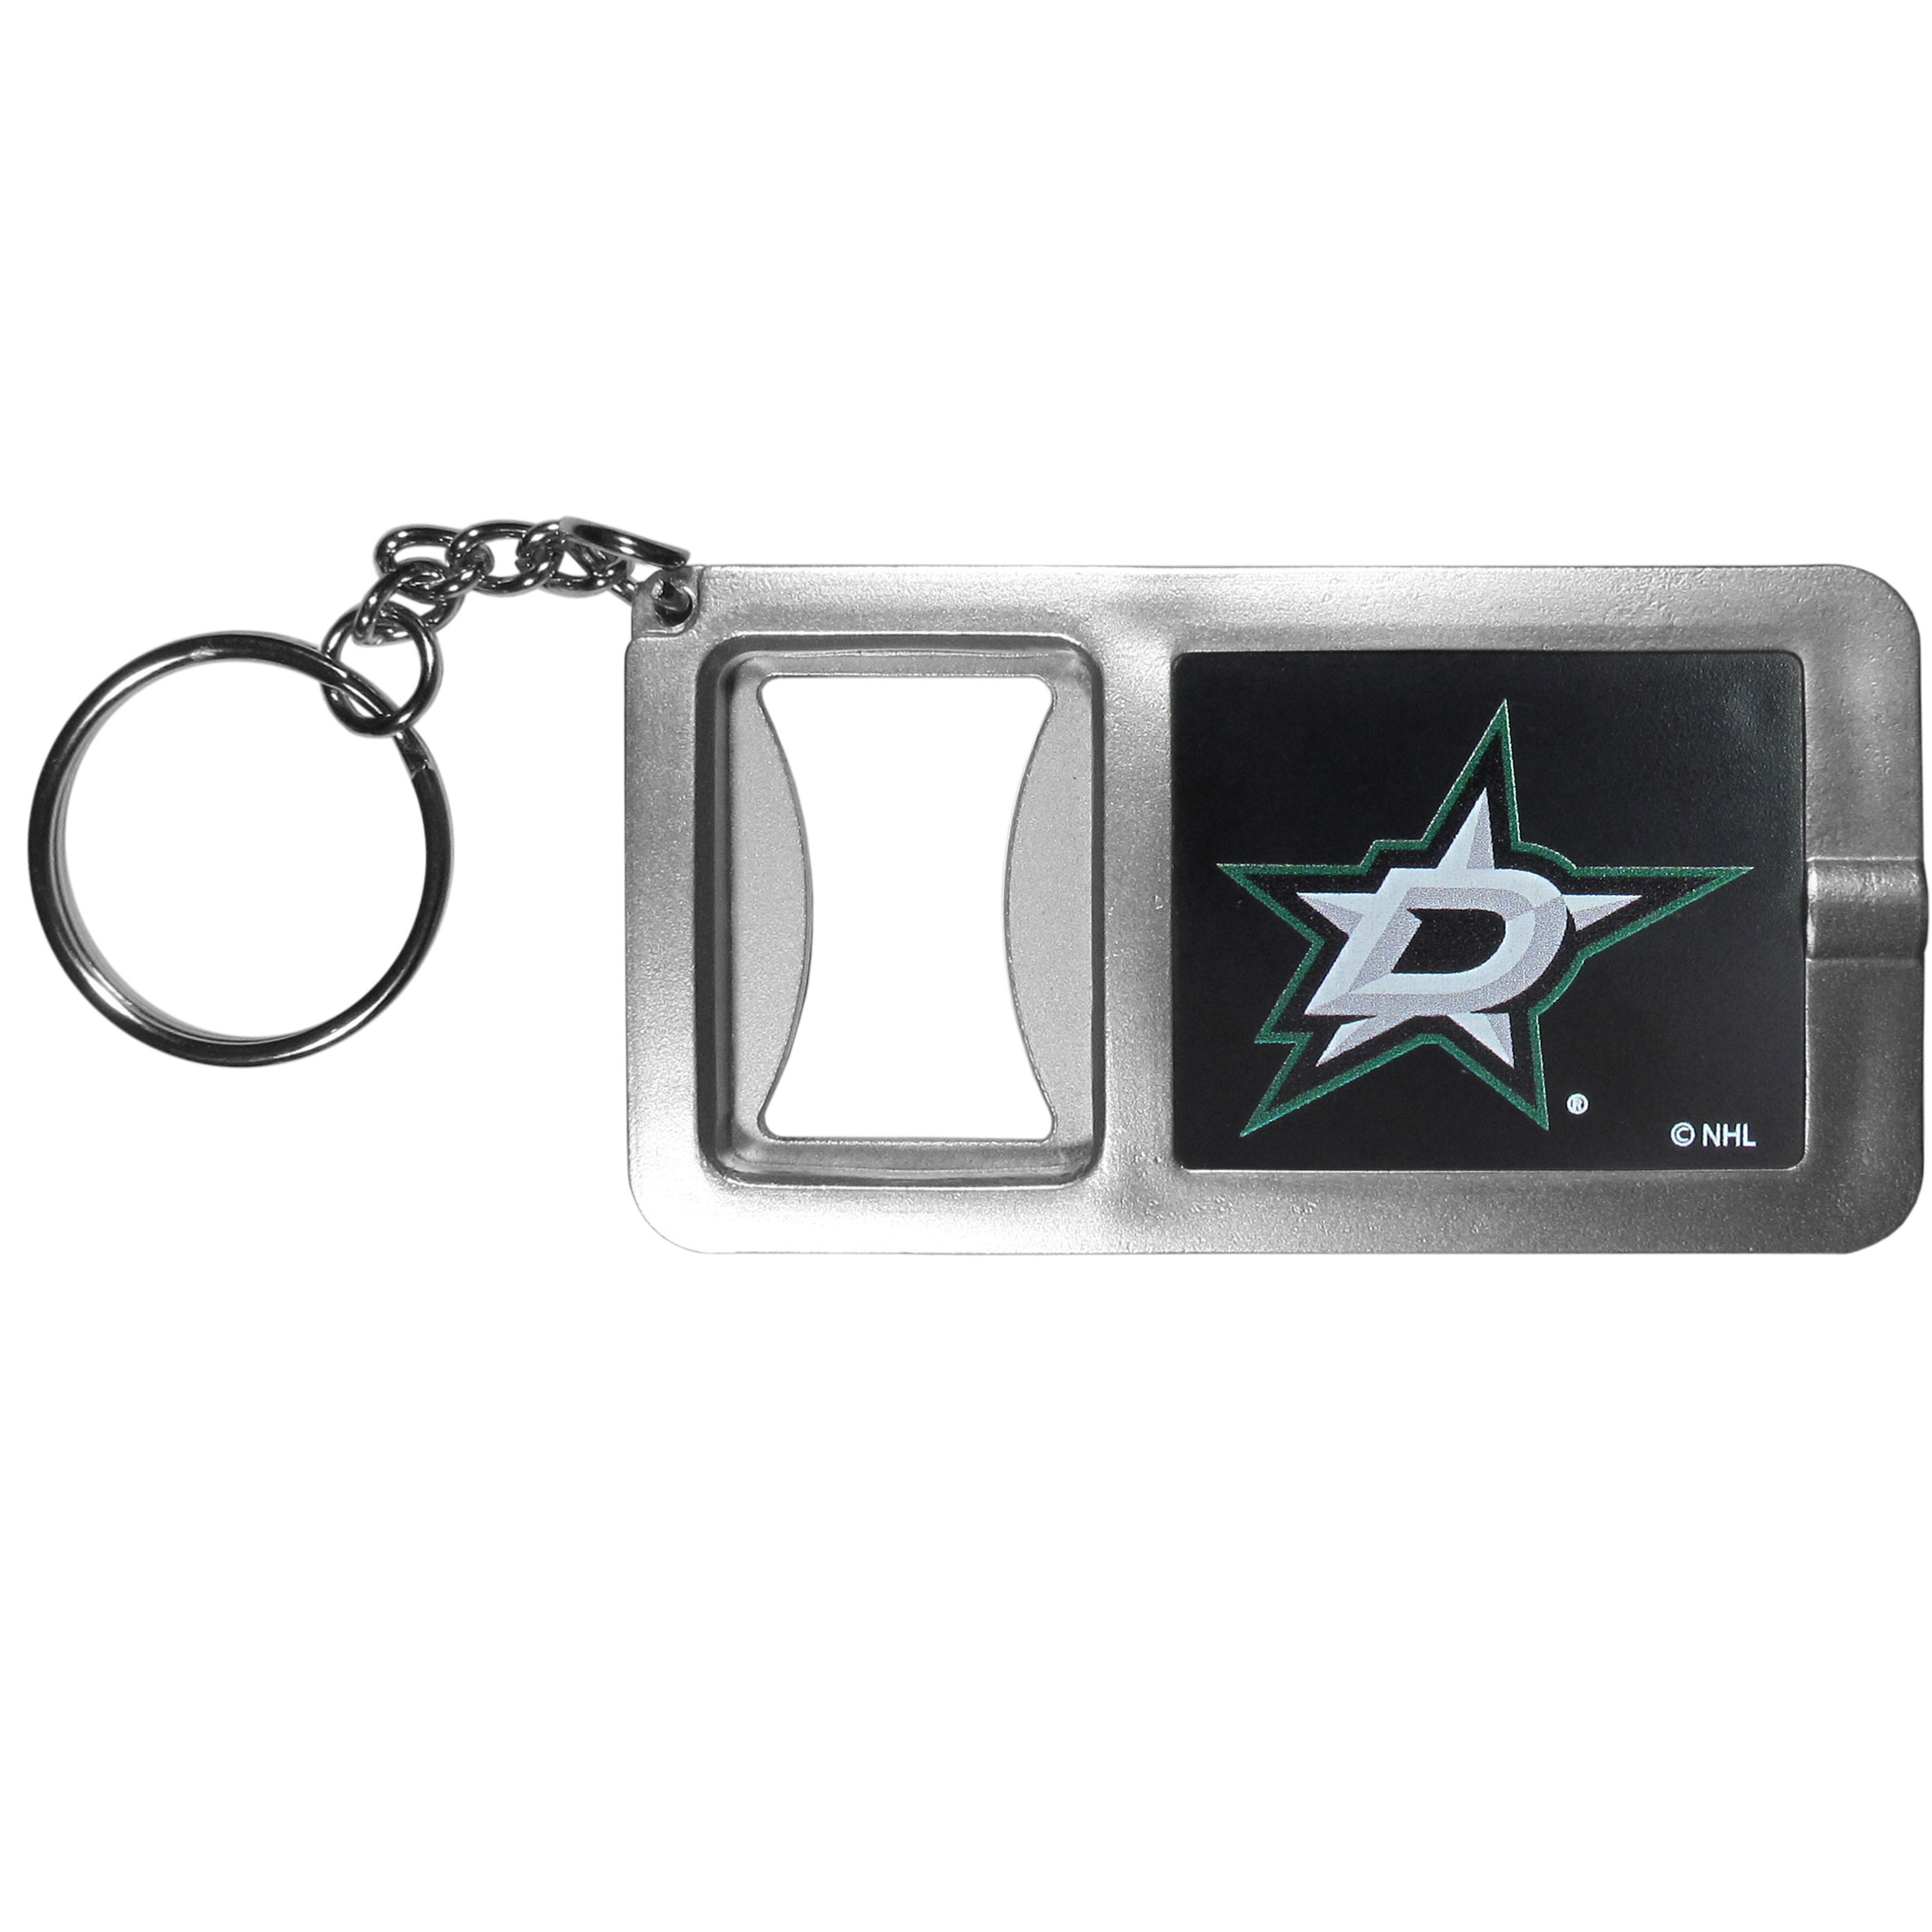 Dallas Stars™ Flashlight Key Chain with Bottle Opener - Never be without light with our Dallas Stars™ flashlight keychain that features a handy bottle opener feature. This versatile key chain is perfect for camping and travel and is a great way to show off your team pride!